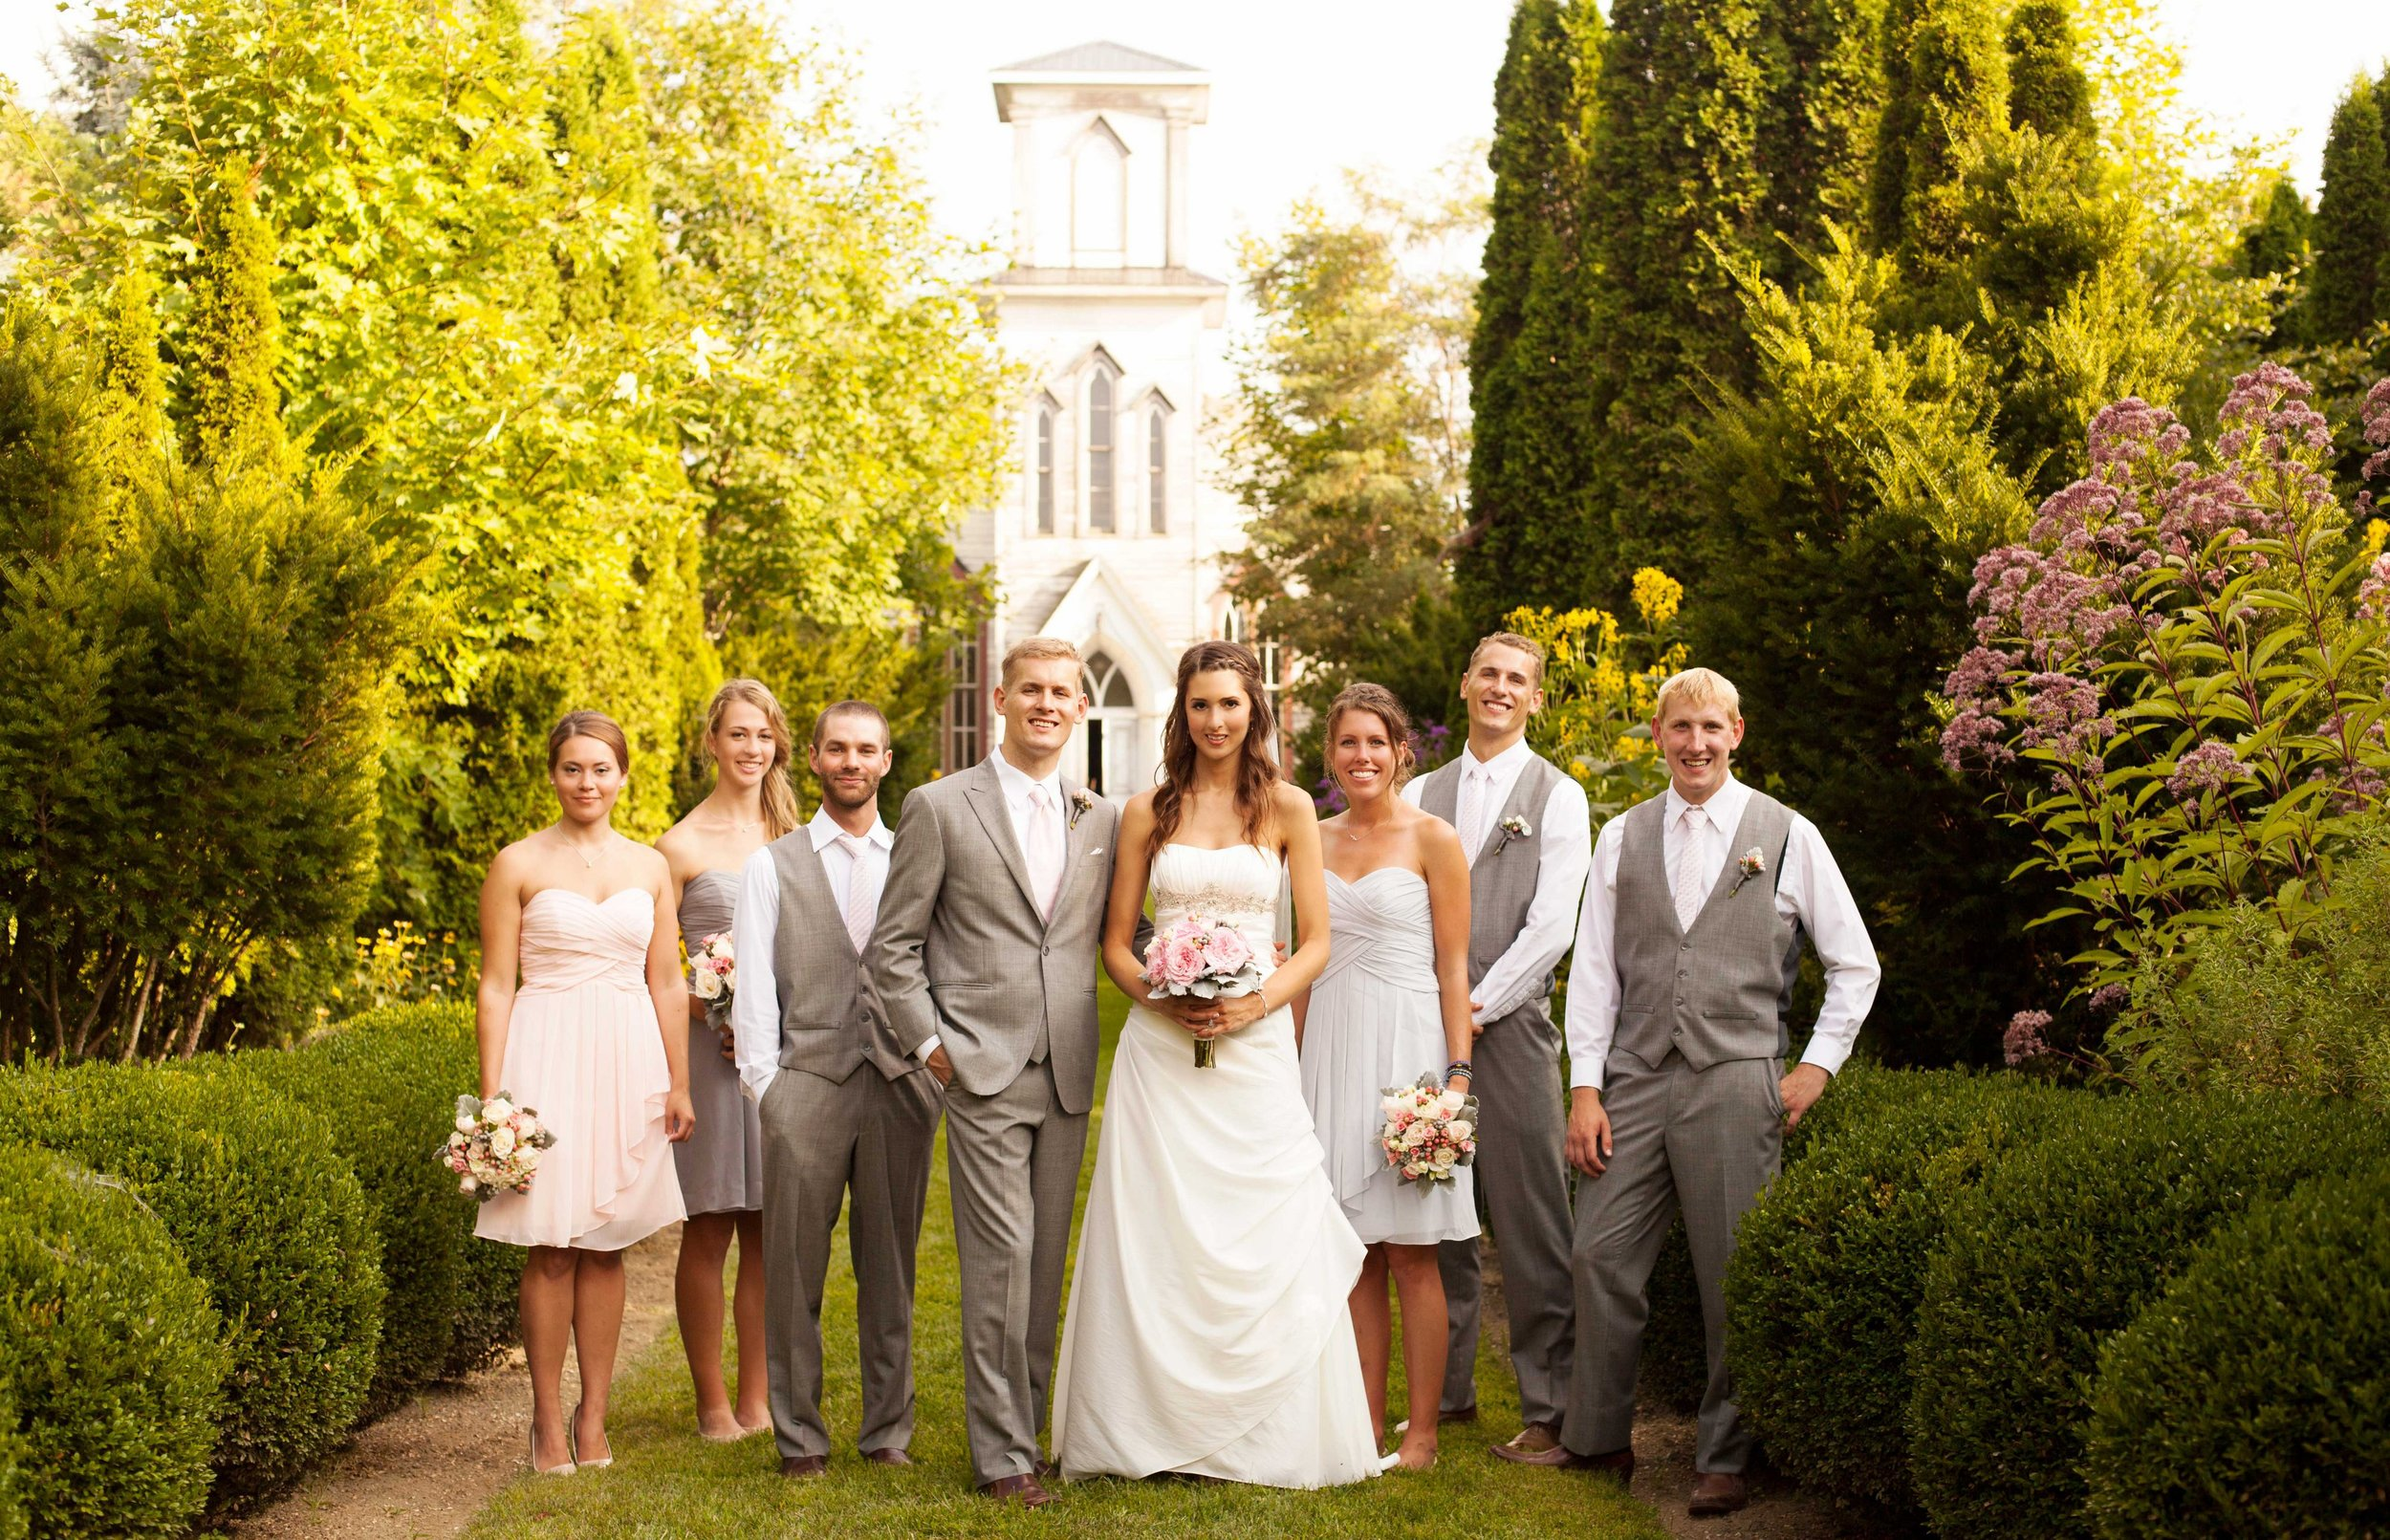 Joel Rachel Married-Bridal Party Portraits-0005.jpg